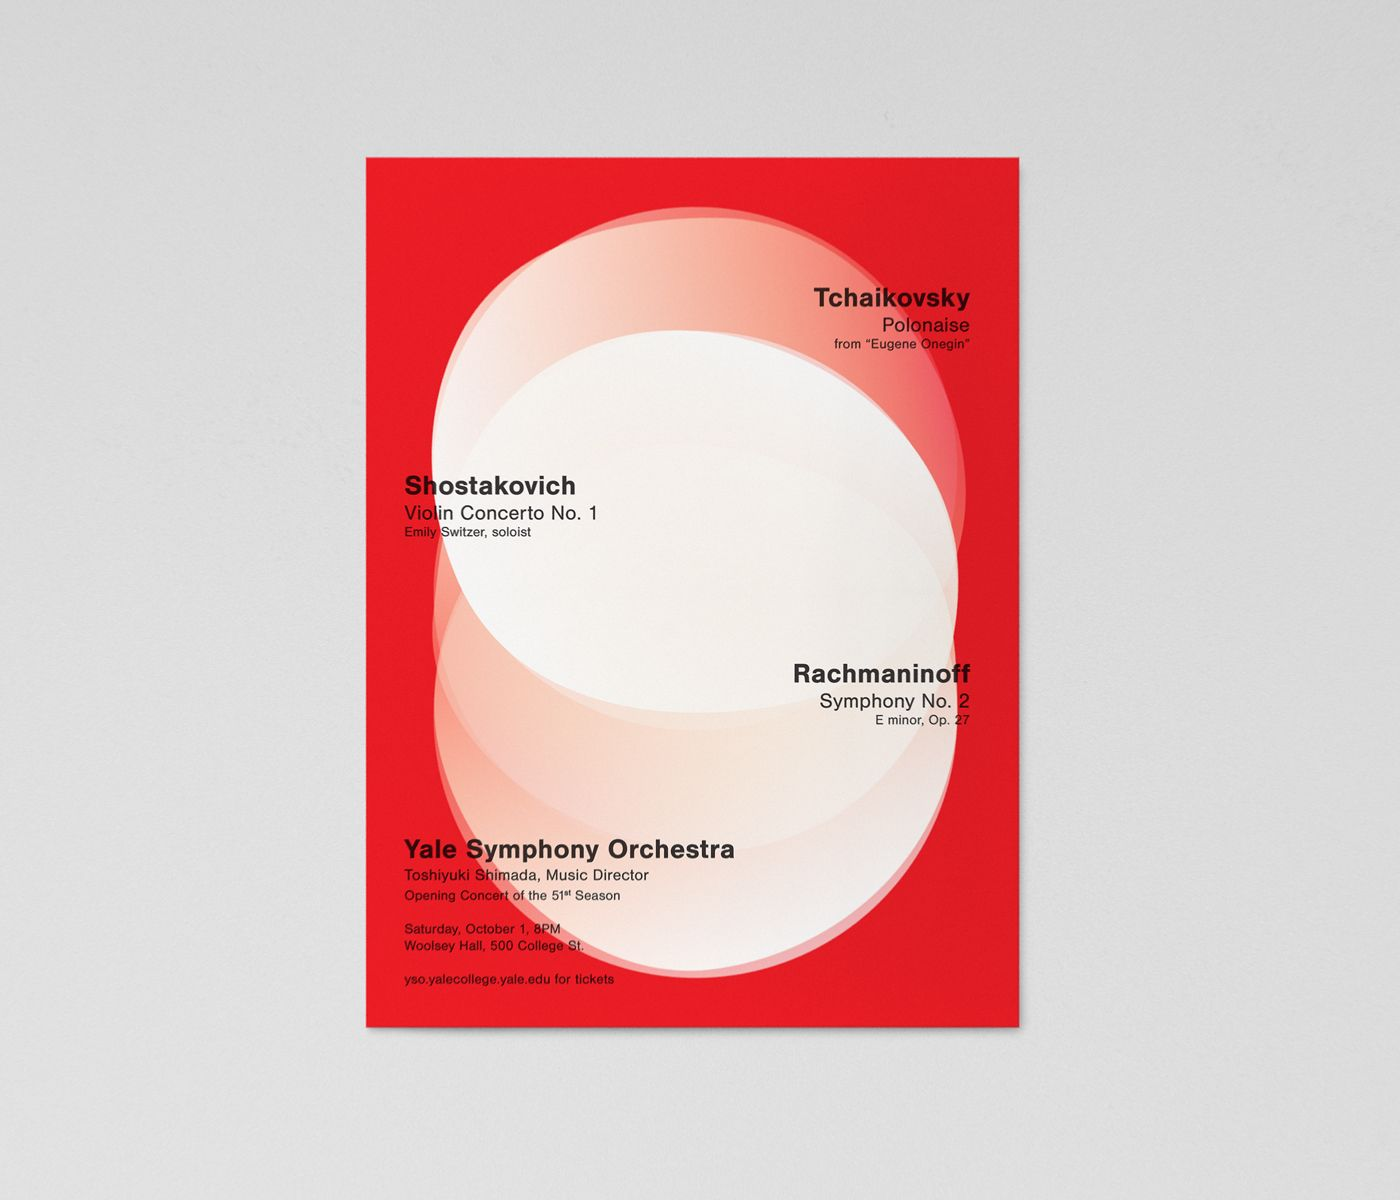 Minimalist Swiss poster design for The Yale Symphony Orchestra's Opening Concert of the 51st Season. Circular white designs overlap and float on a red background. Black text describes the concert: Tchaikovsky, Shostakovich, and Rachmaninoff